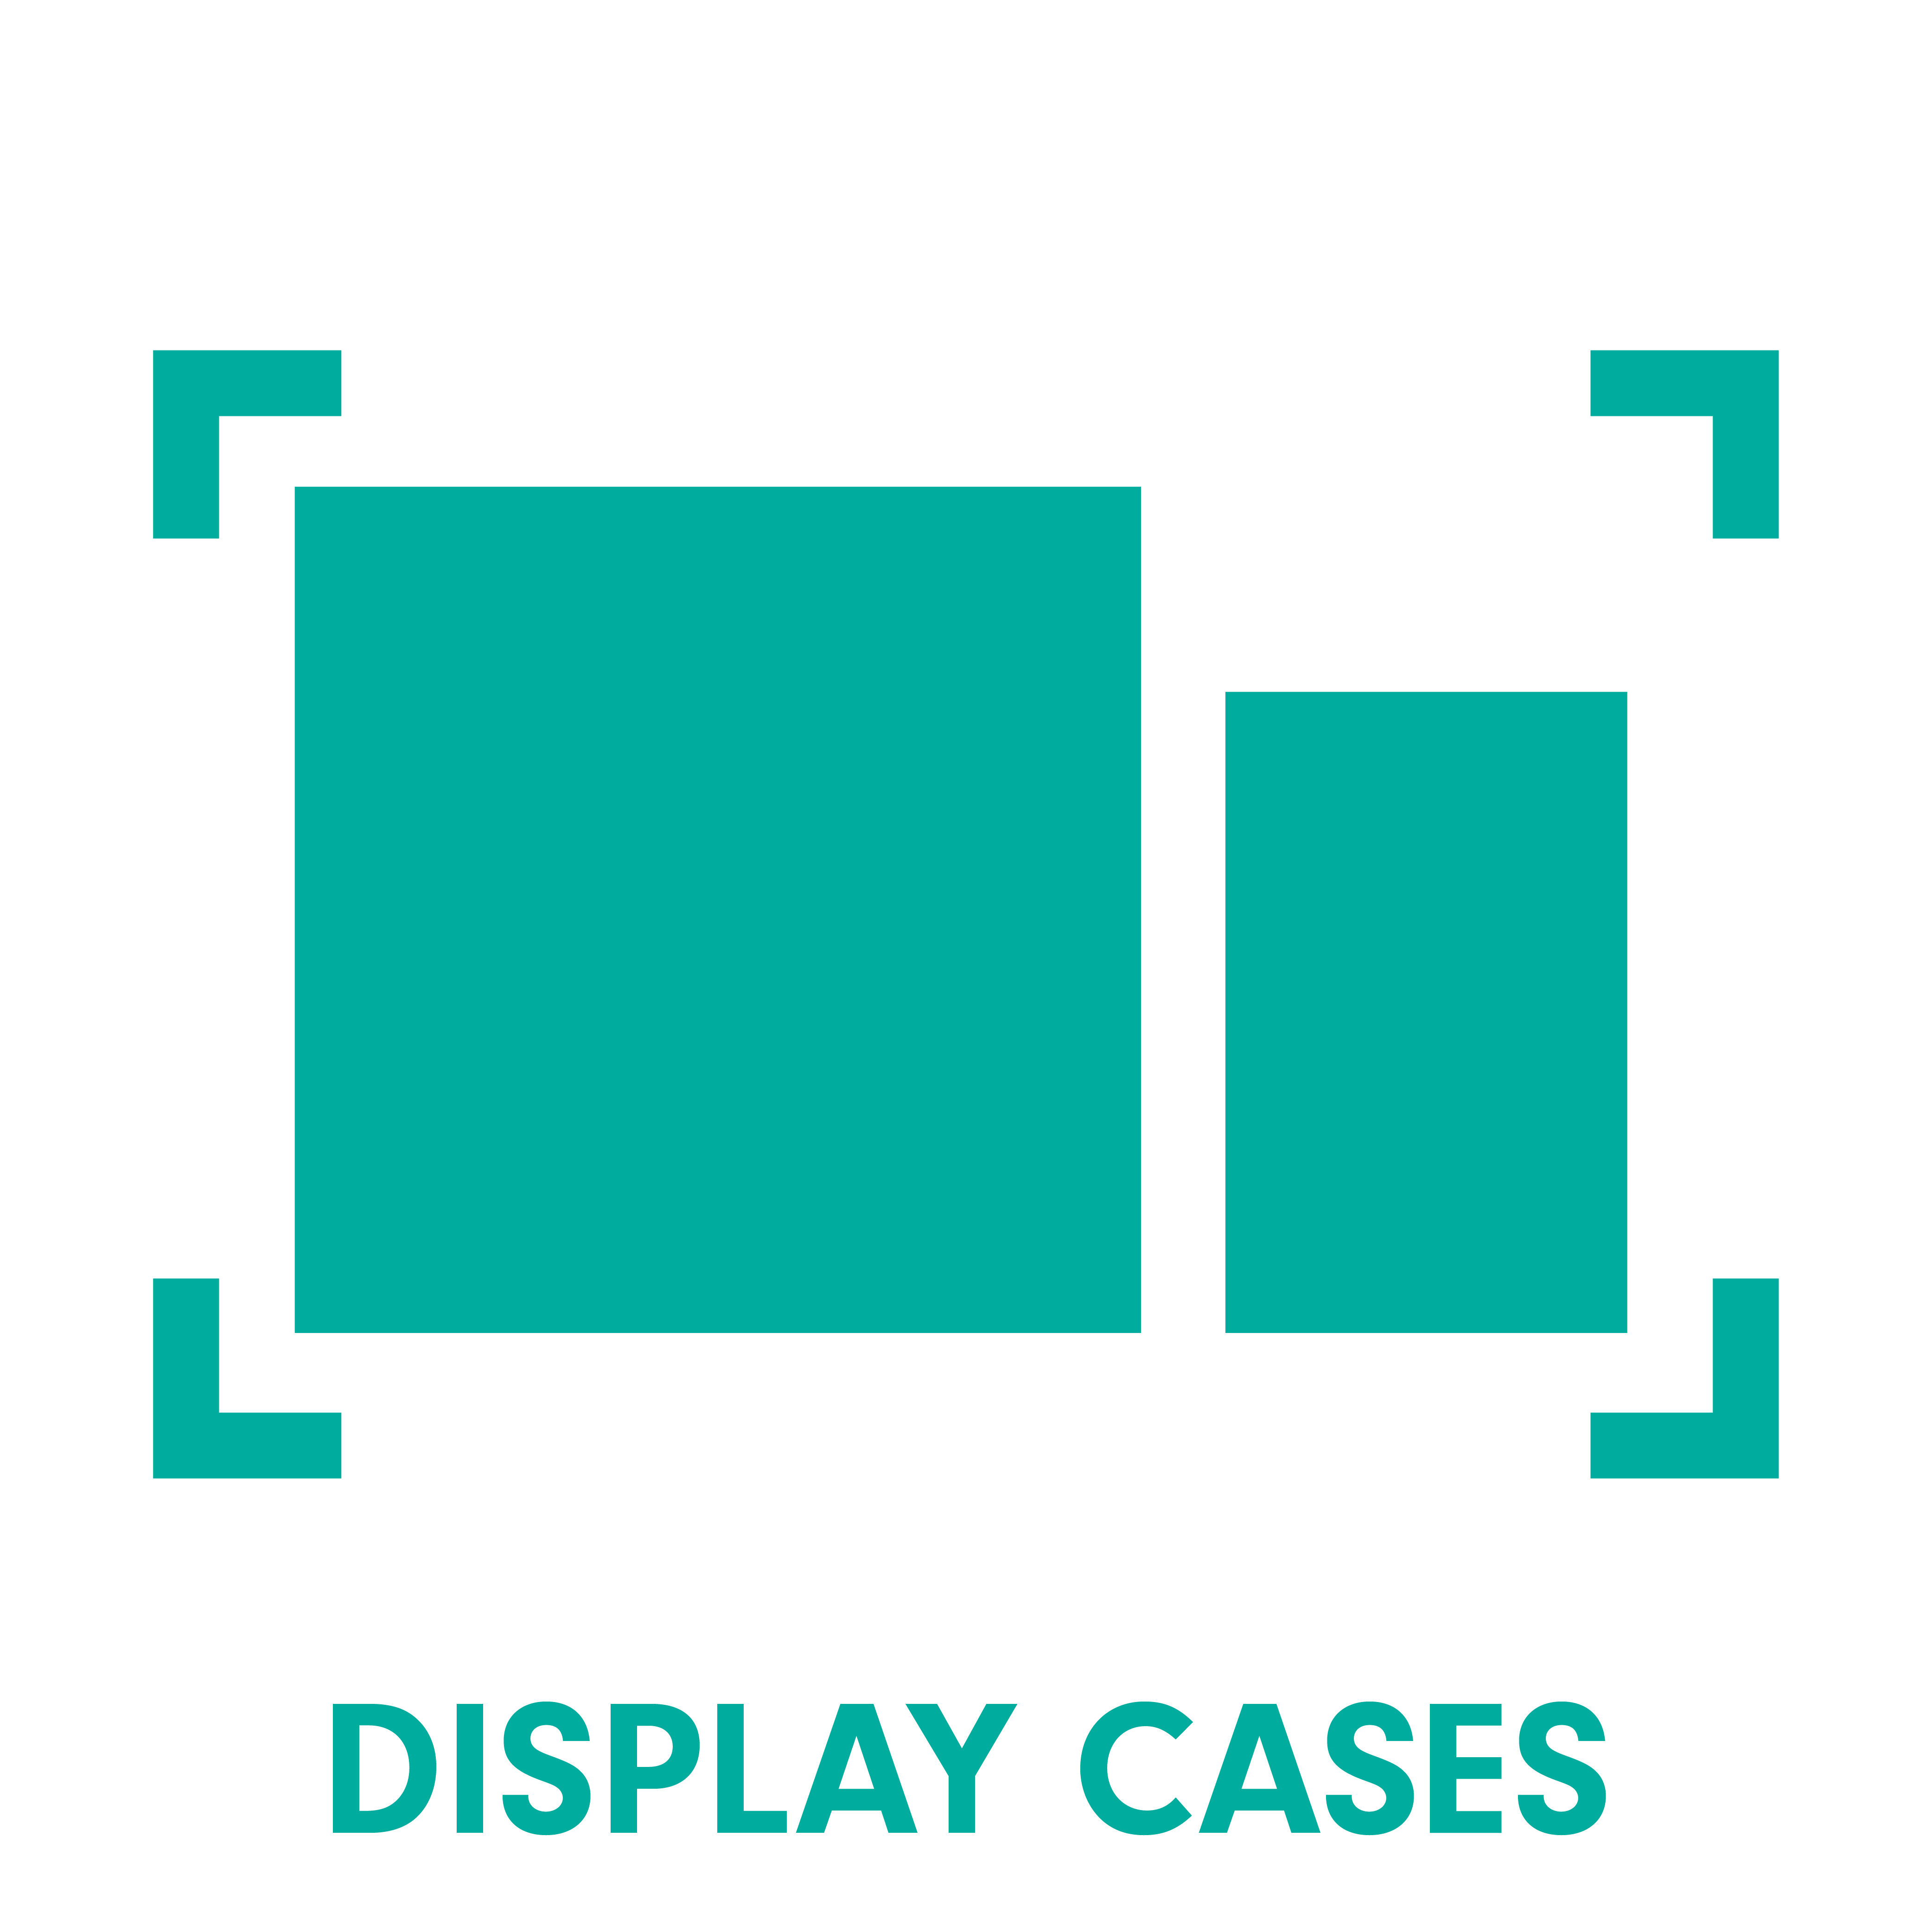 Display Cases category icon